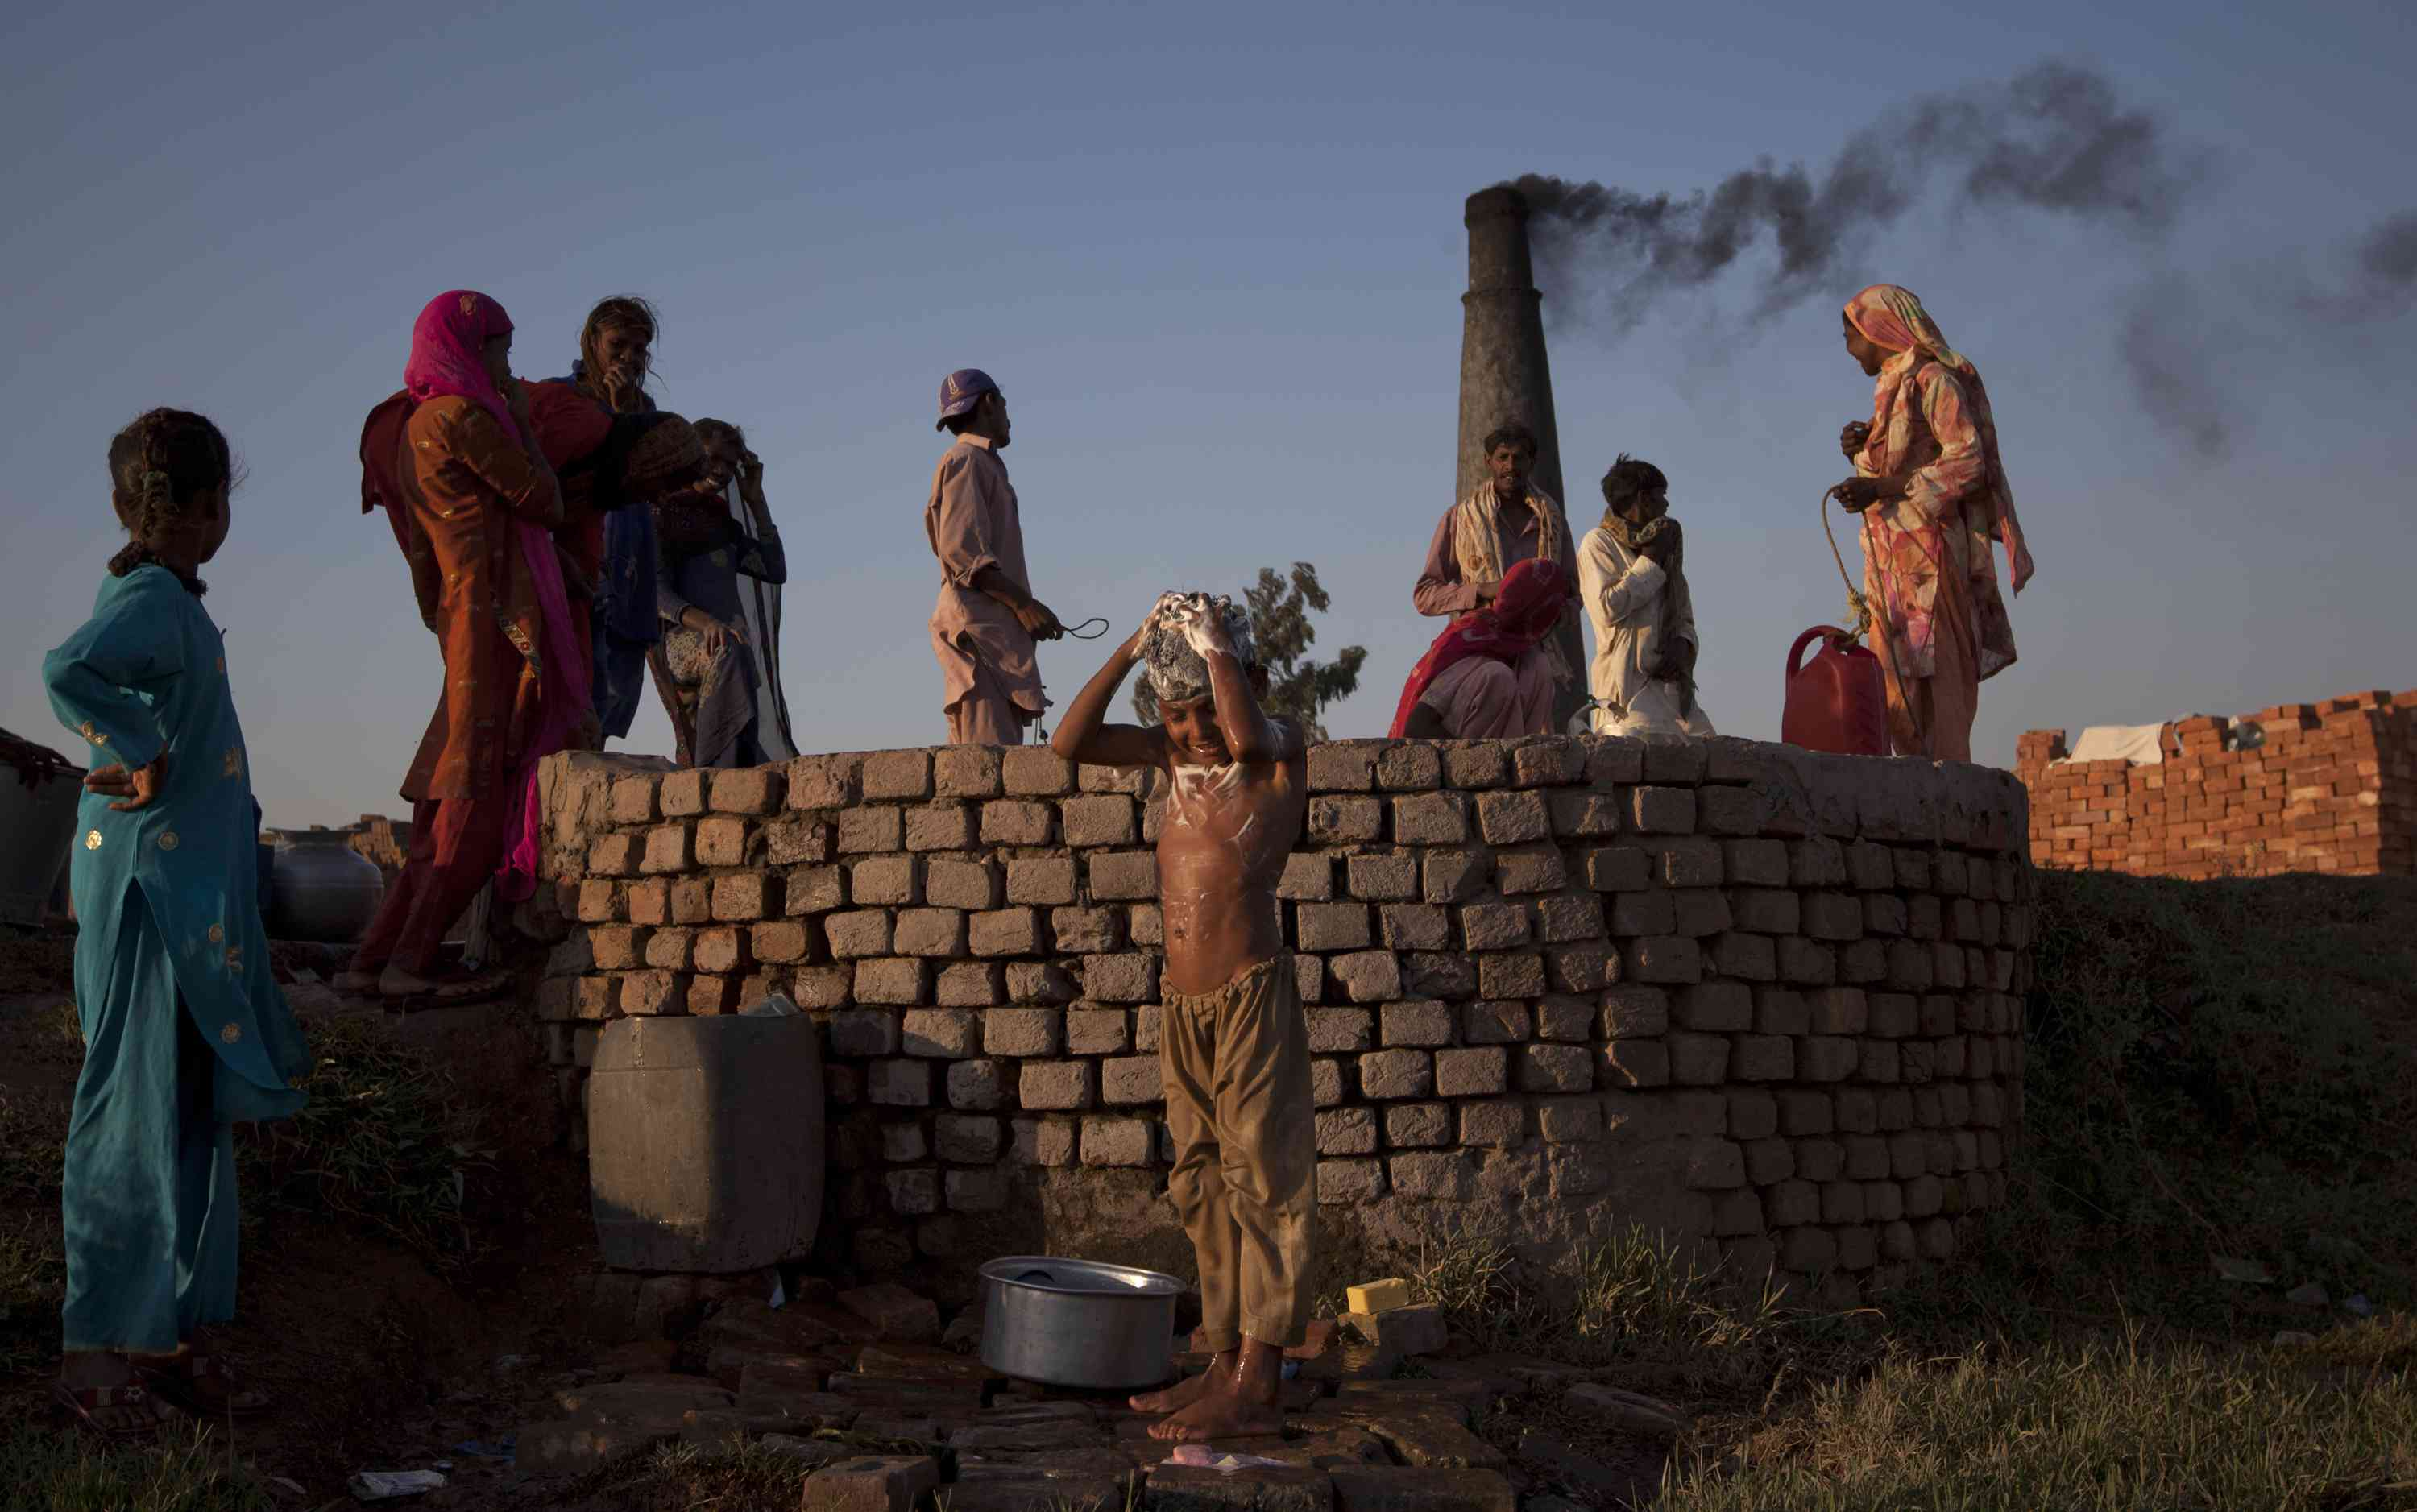 Pakistan has taken the cross-border collaboration route to deal with pollution from brick kilns. (Credit: Rebecca Conway / Reuters)